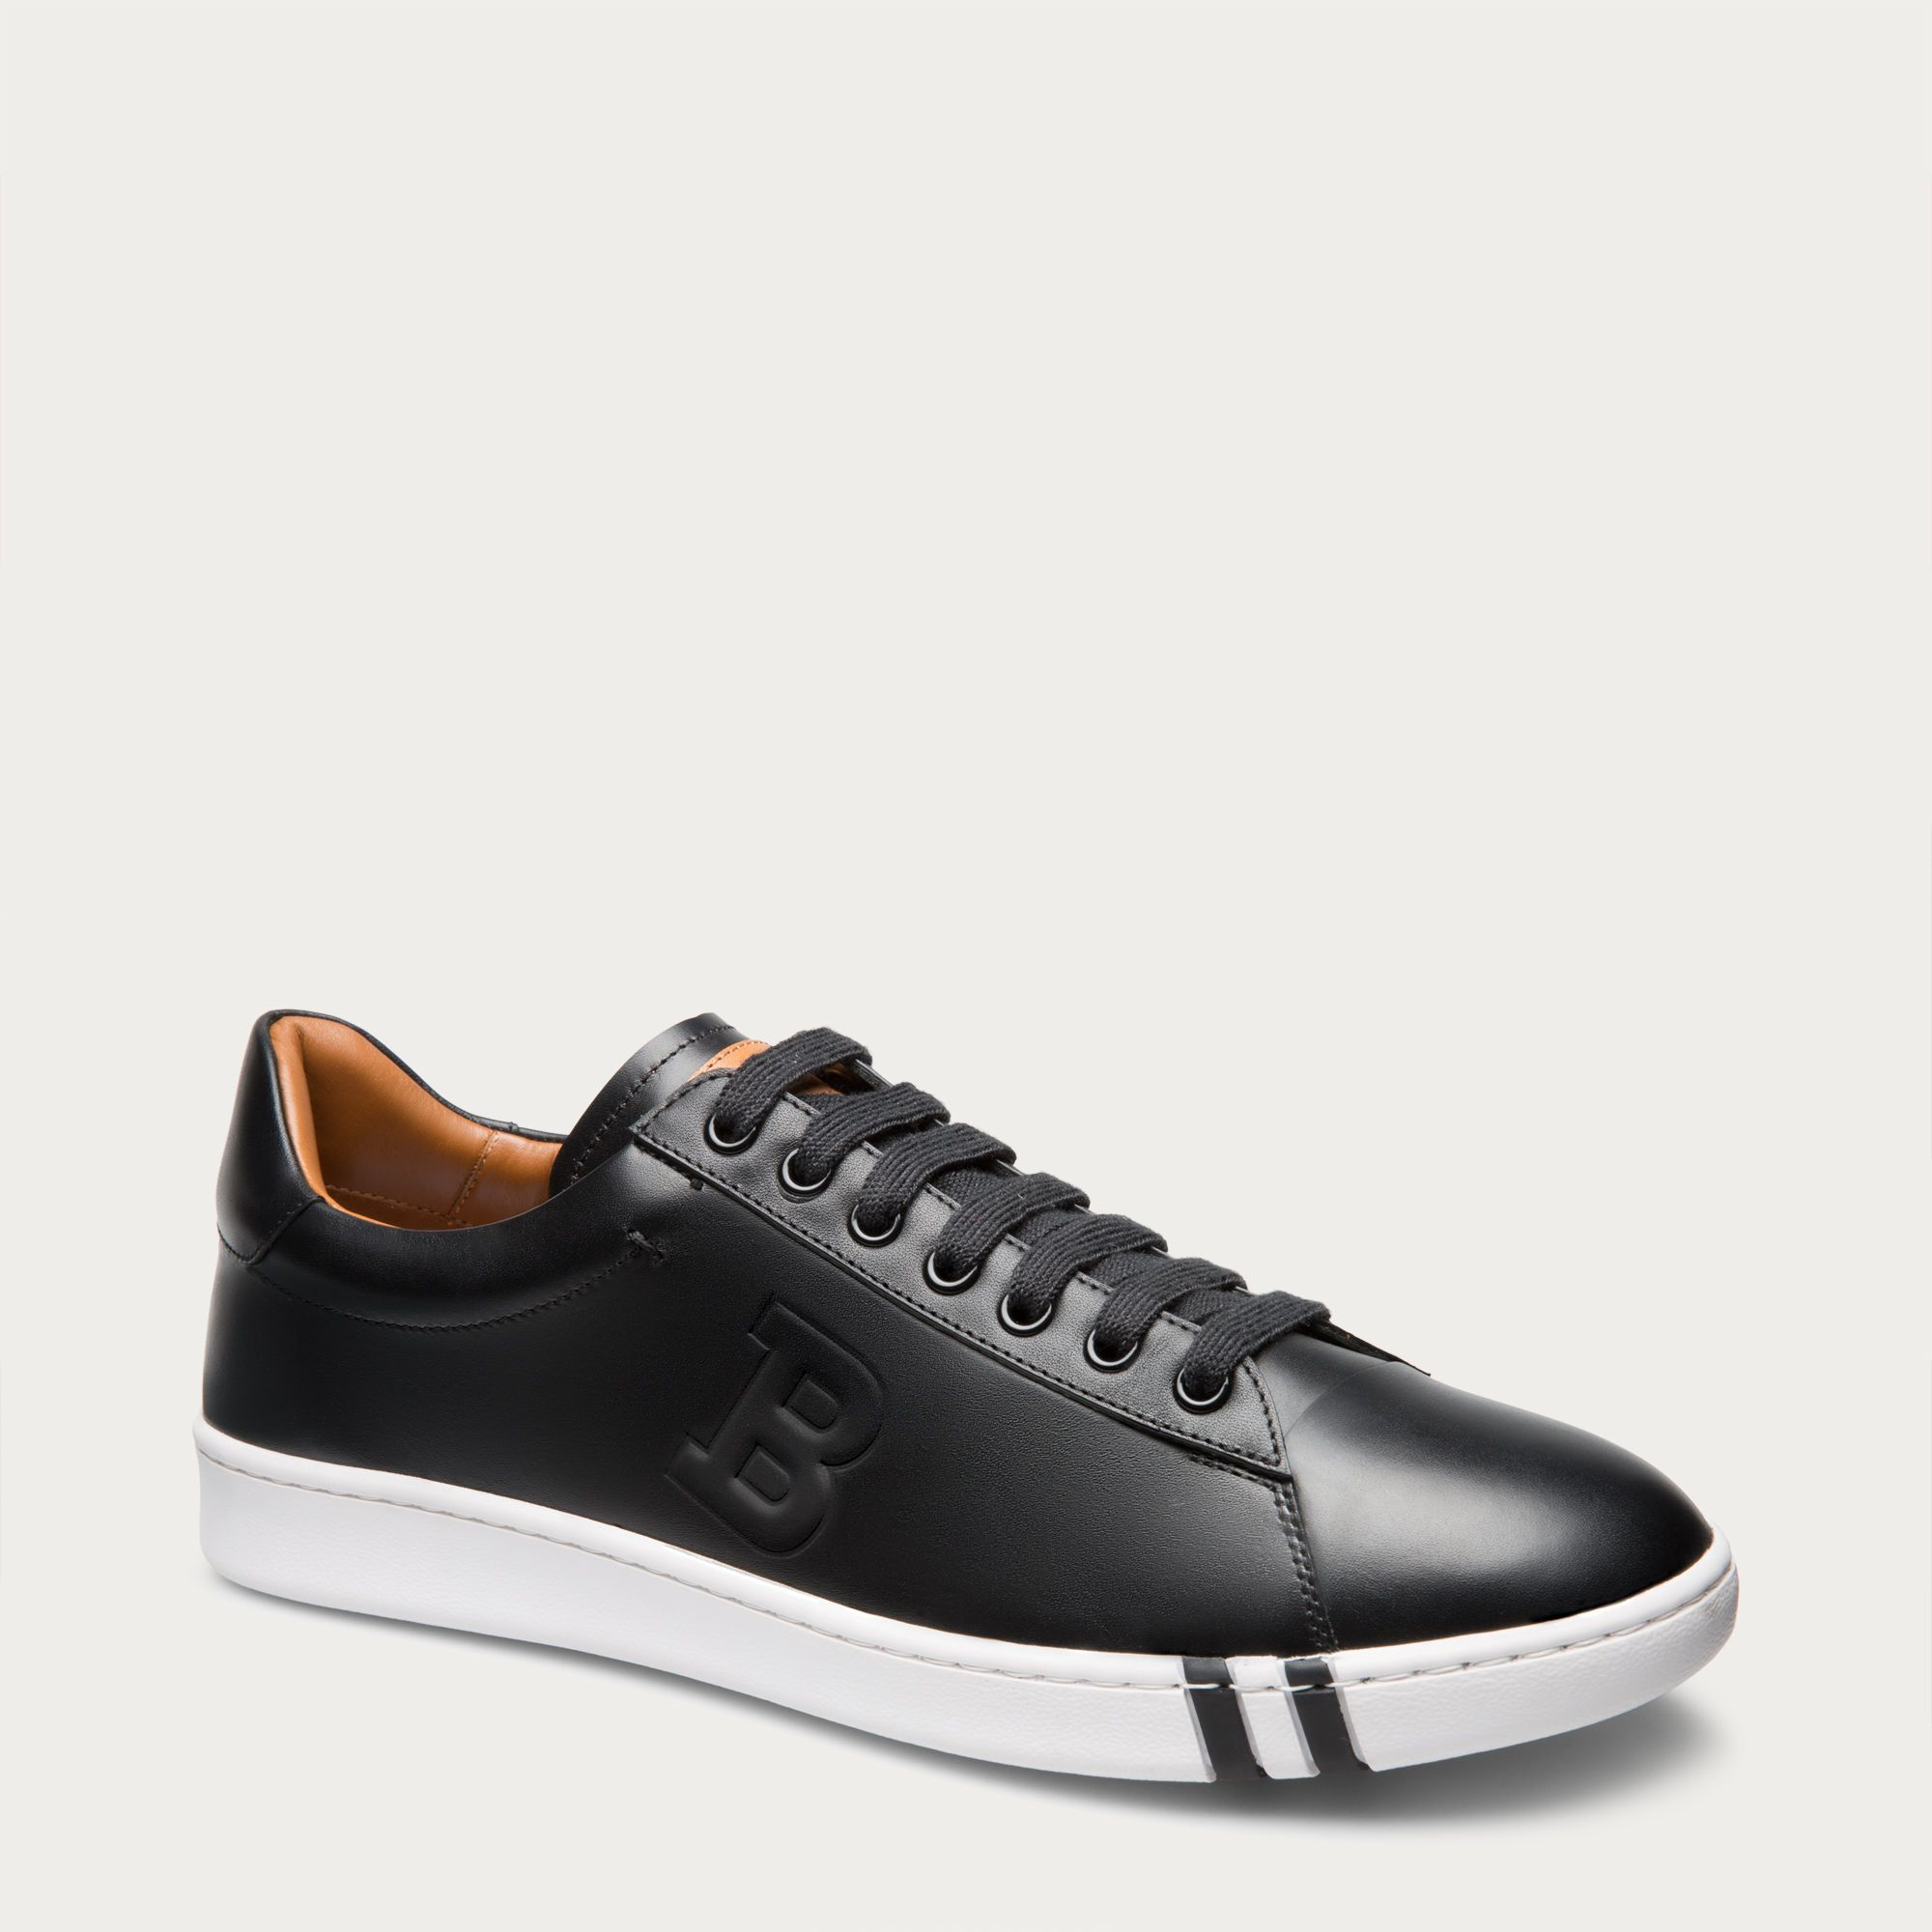 Herald Black, Mens leather trainer in black Bally